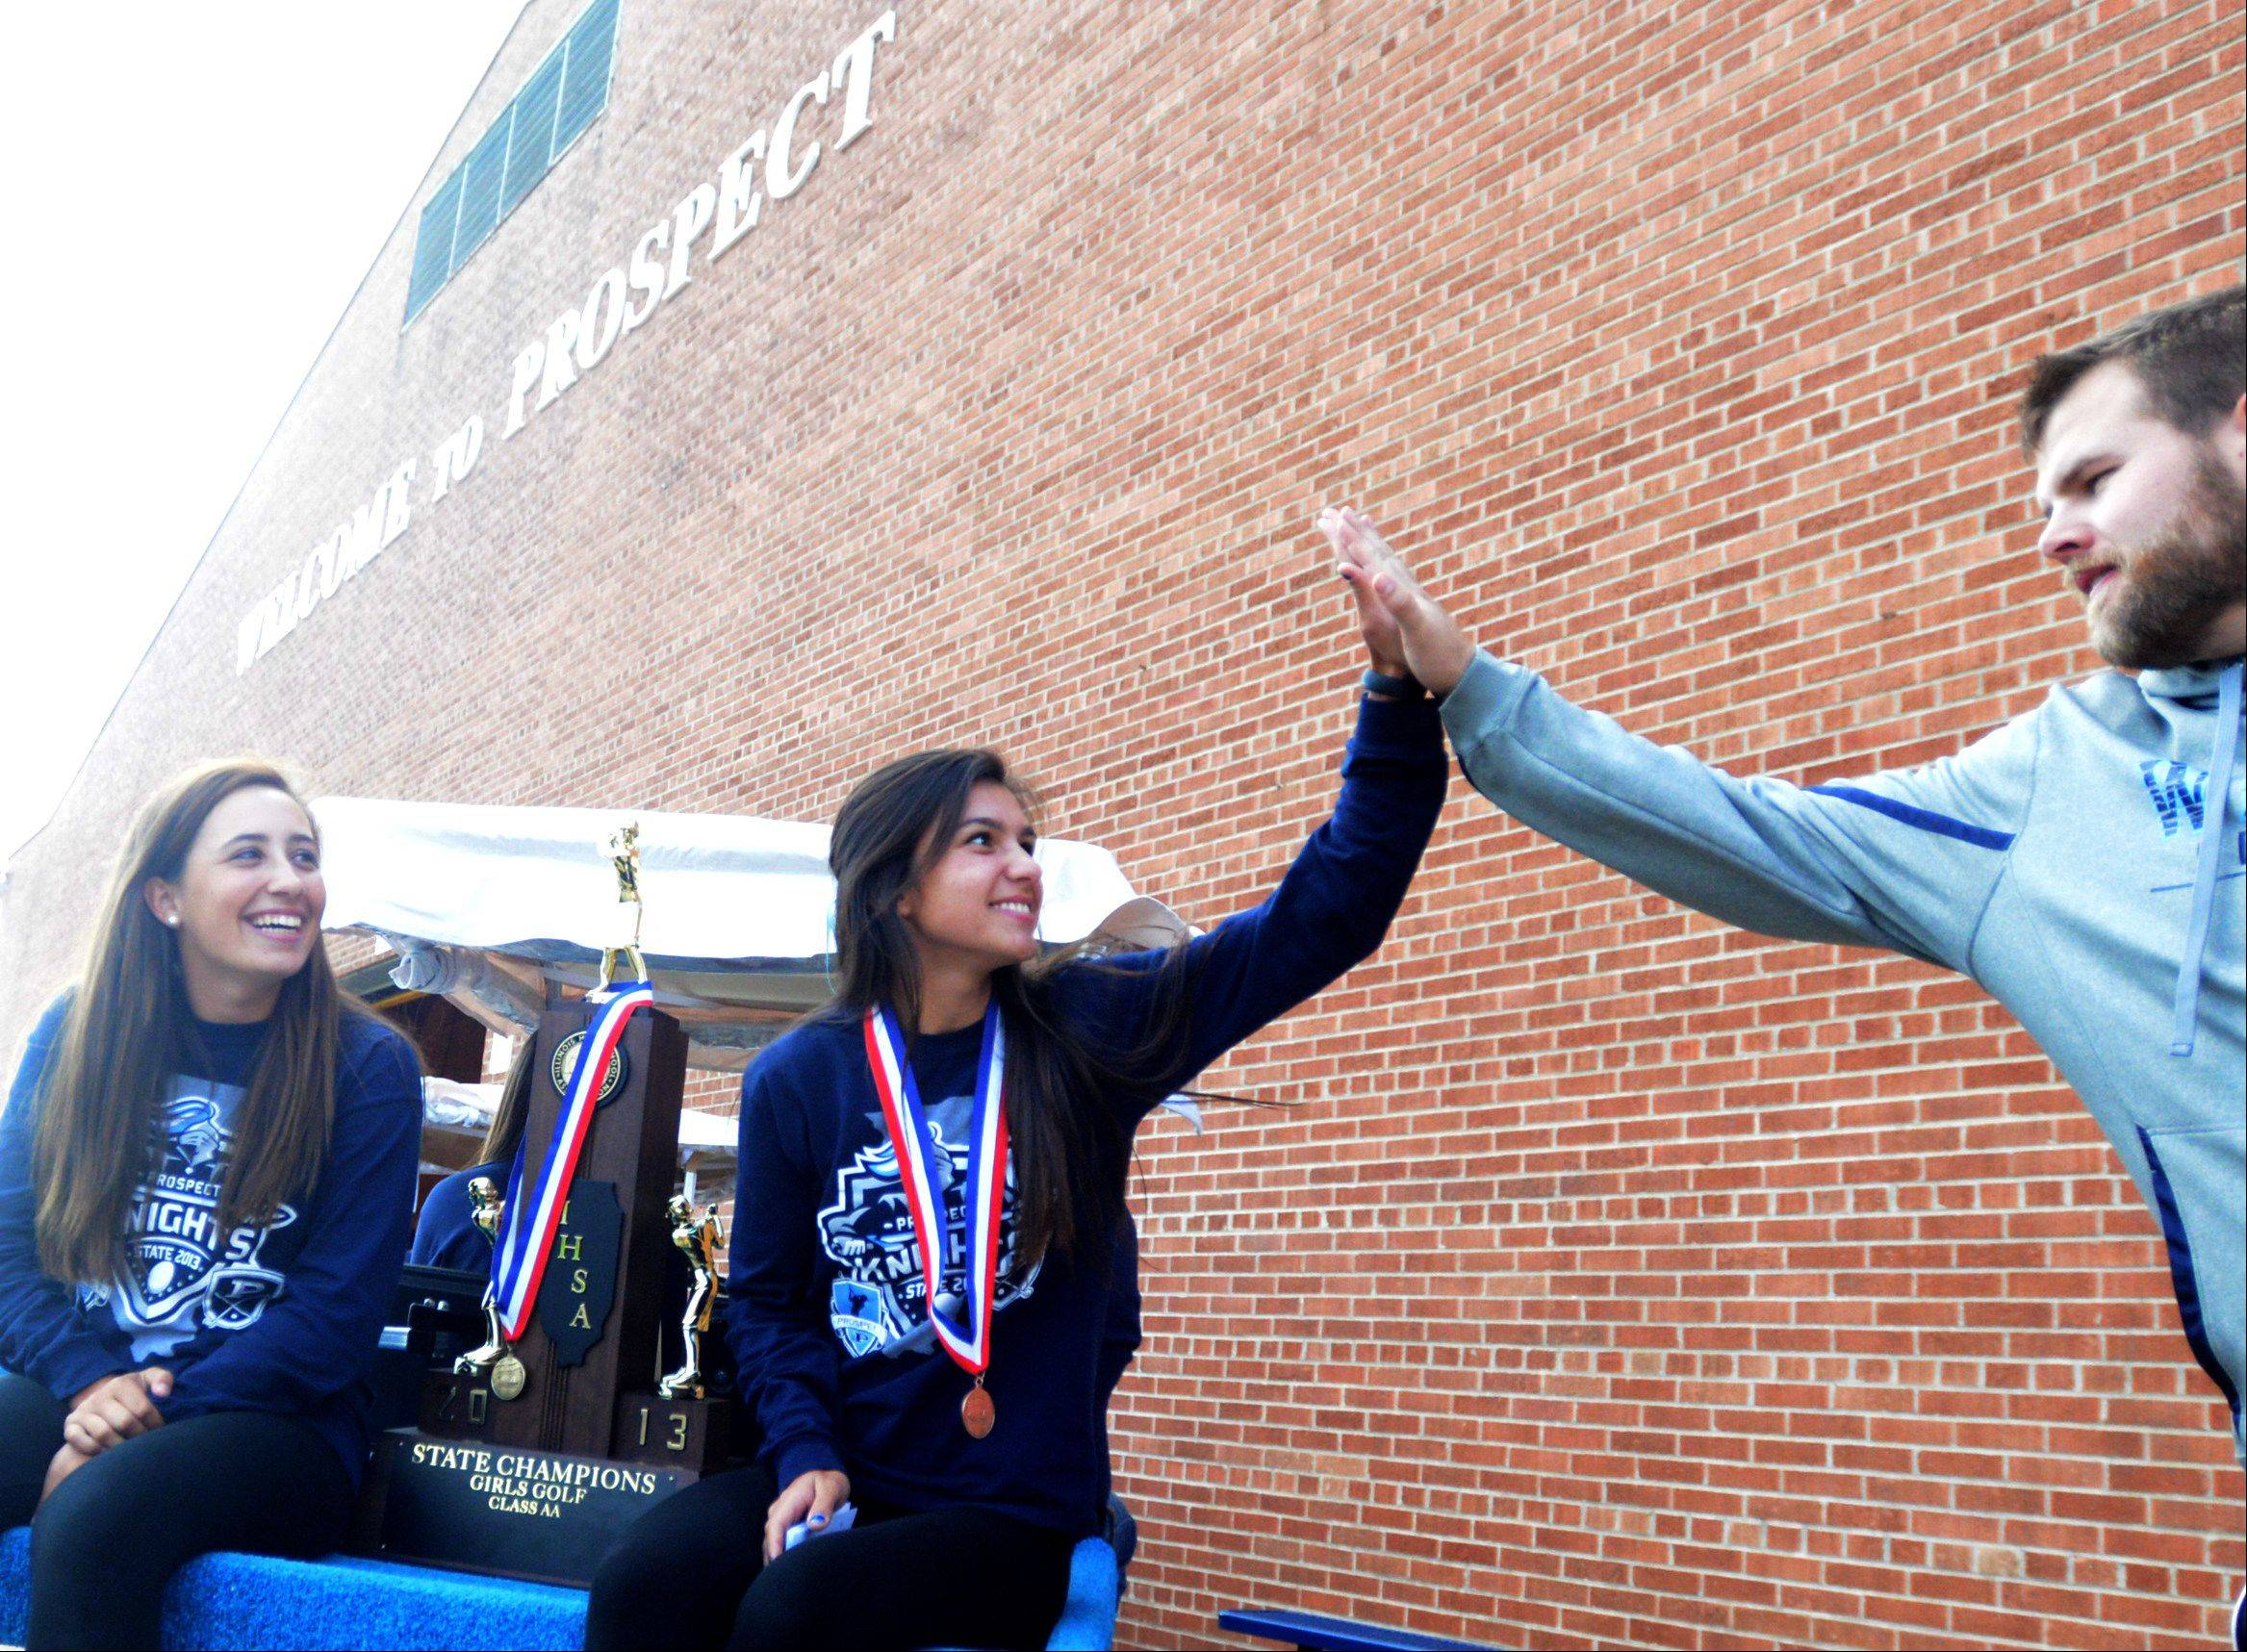 Prospect girls varsity golf team members Isabella Flack, left, and Ally Scaccia, center, are congratulated by assistant boys football coach Tim Beishir just before a pep rally celebrating the team's second state championship in three seasons.